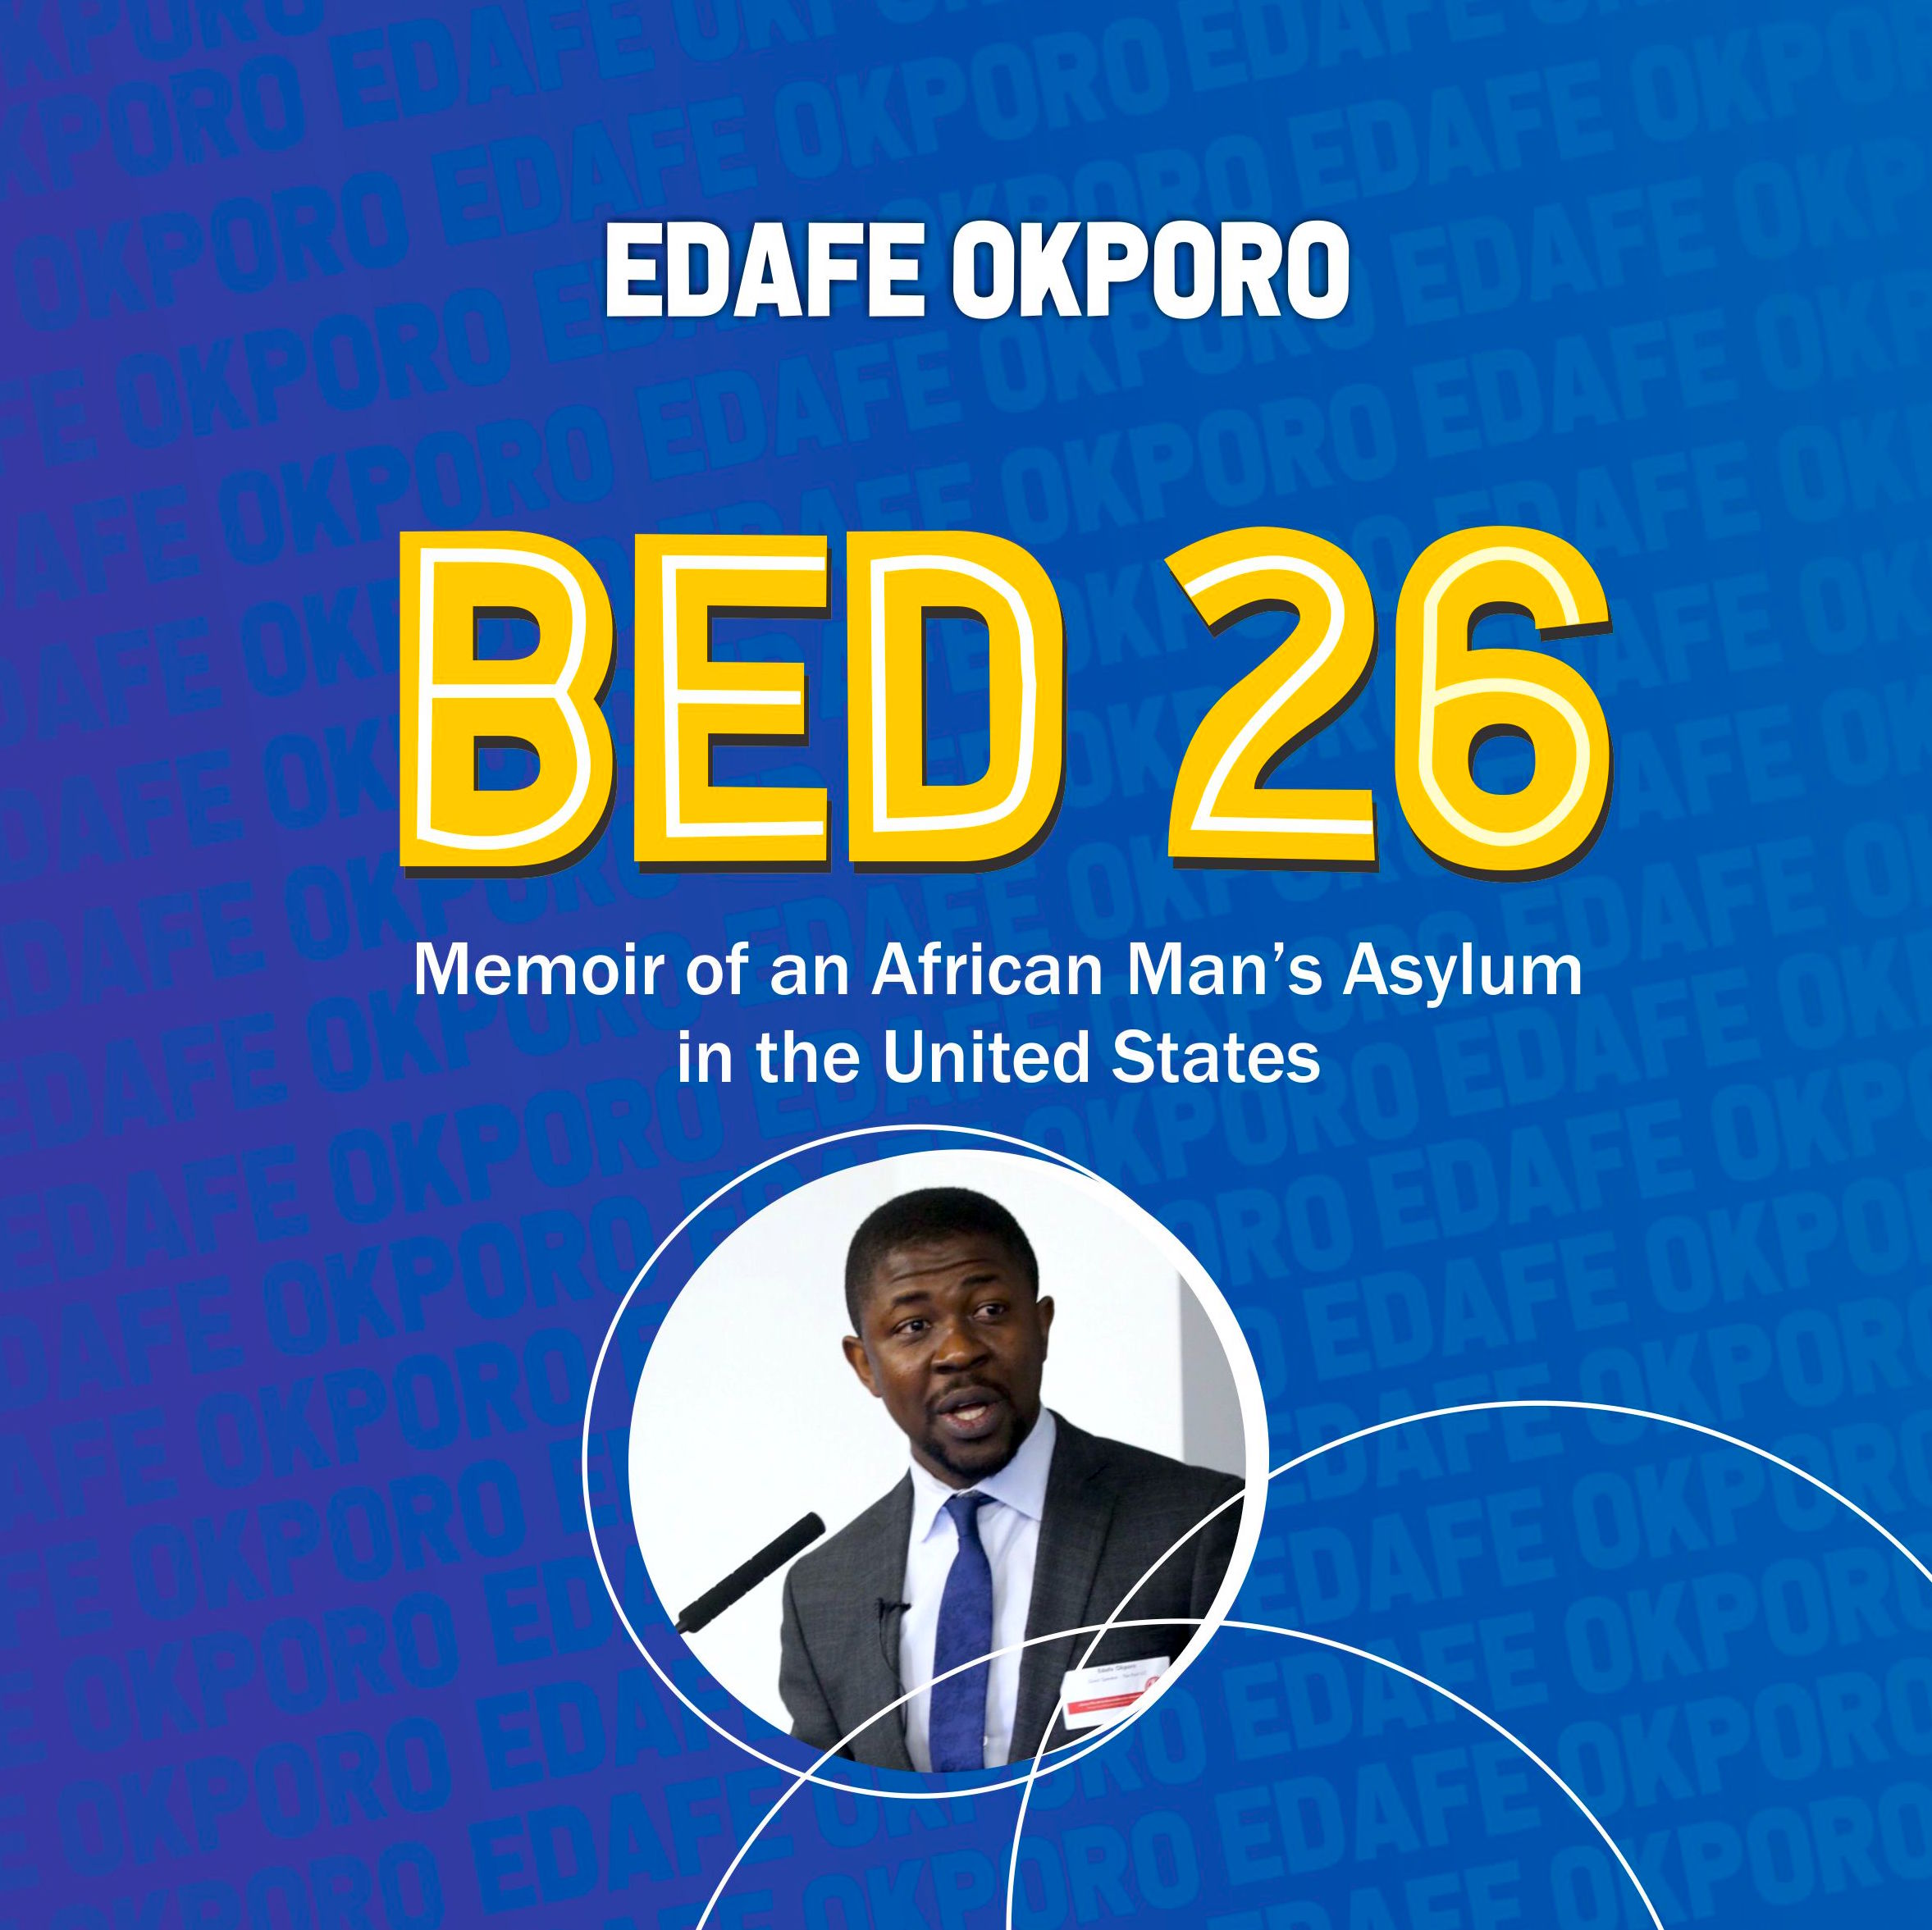 BED 26 - Written by Edafe Okporo, narrated by Michael Goodrick. Published in march 2018, the audio book version has a new cover and a voice over by Michael who has produce best selling audio books.